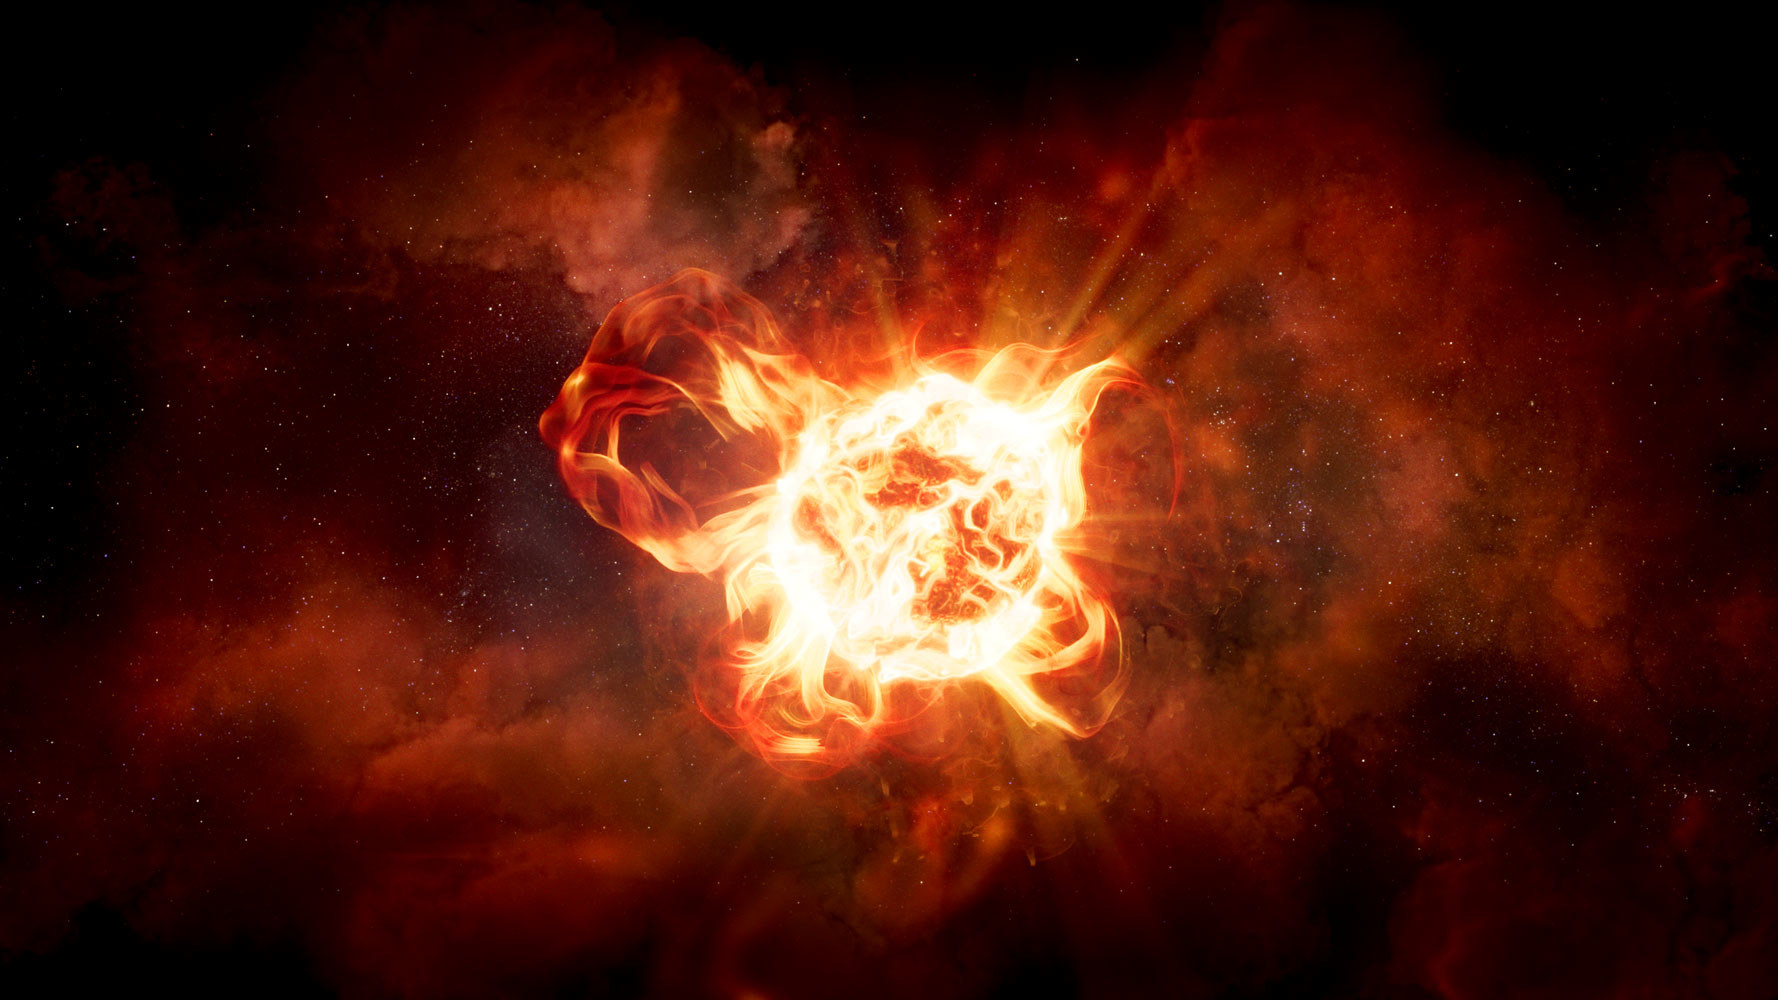 An artist's rendering of VY Canis Majoris